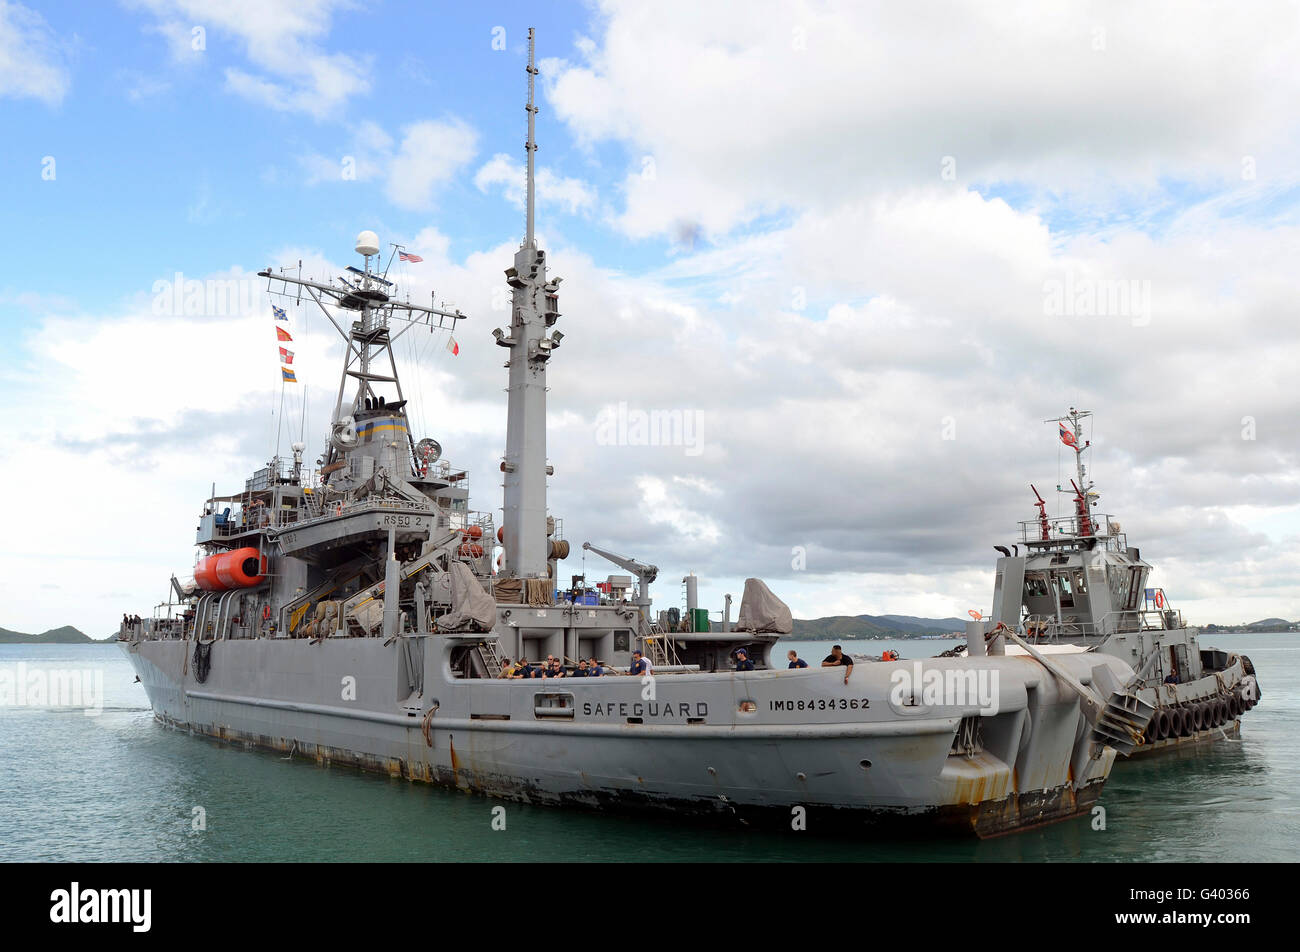 Military Sealift Command rescue and salvage ship USNS Safeguard. - Stock Image